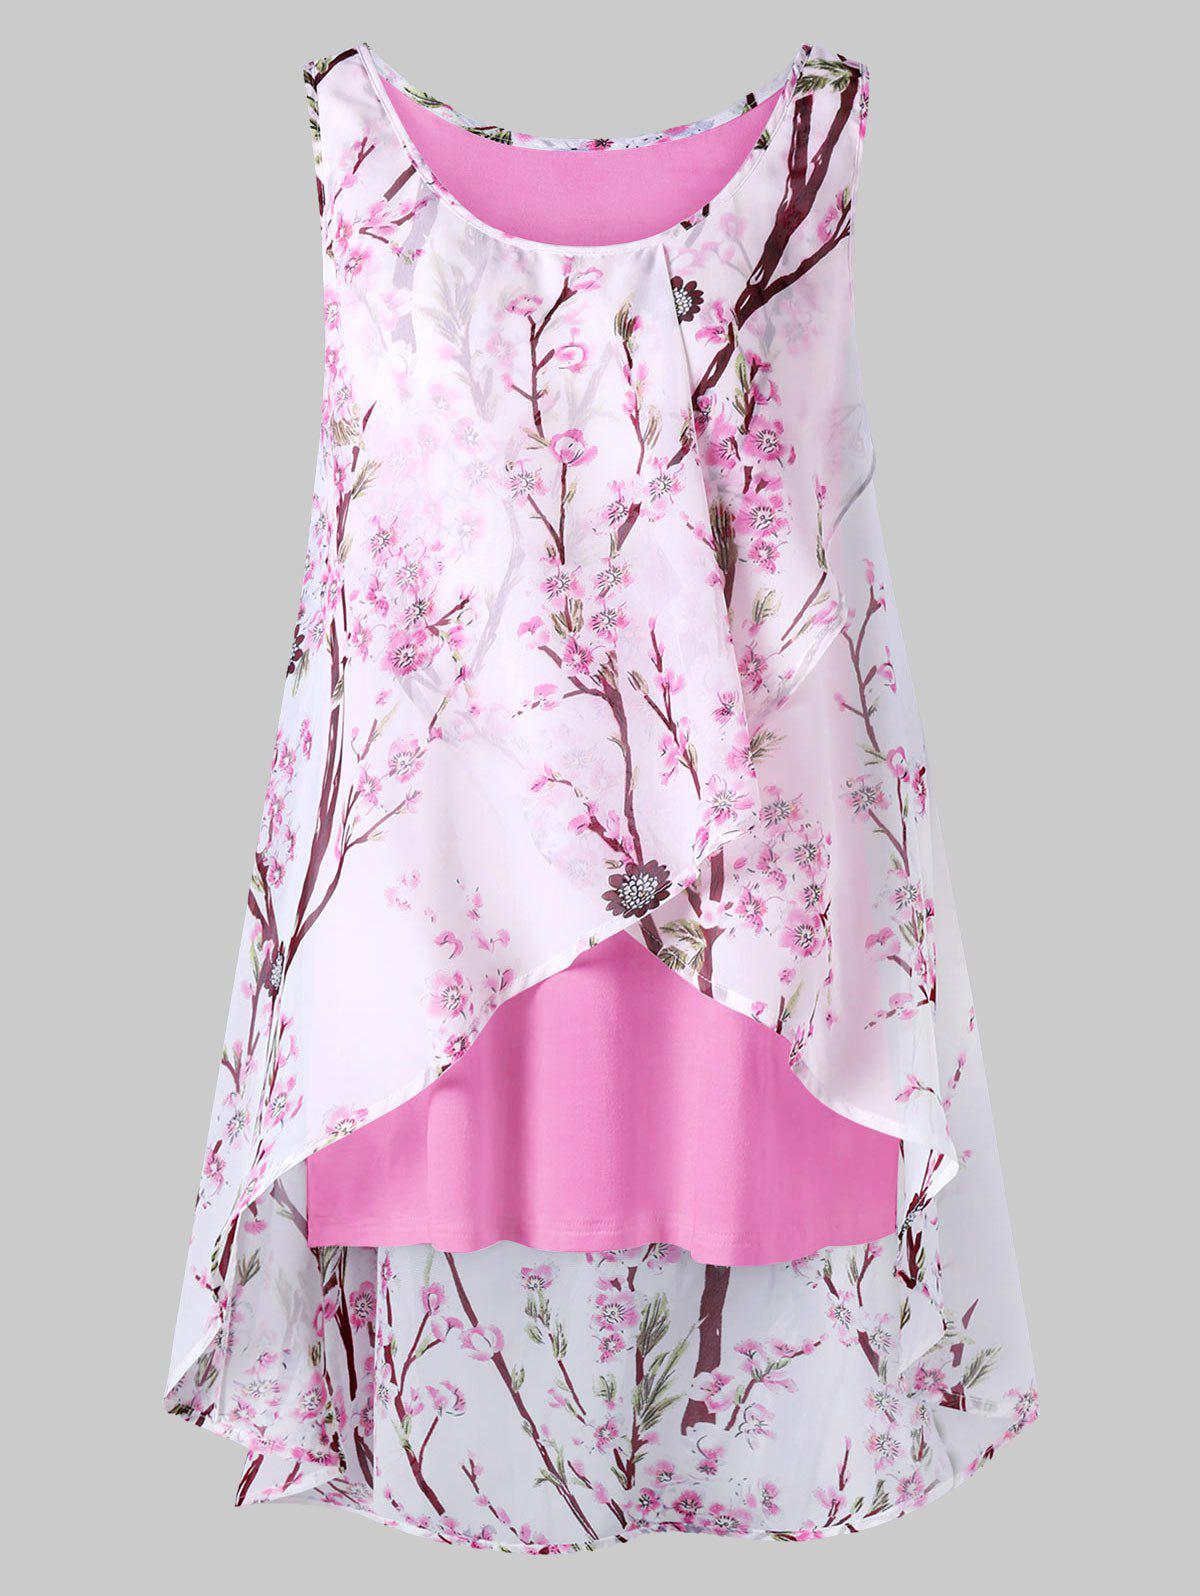 Plus Size Tiny Floral Overlap Sleeveless Top, Light pink